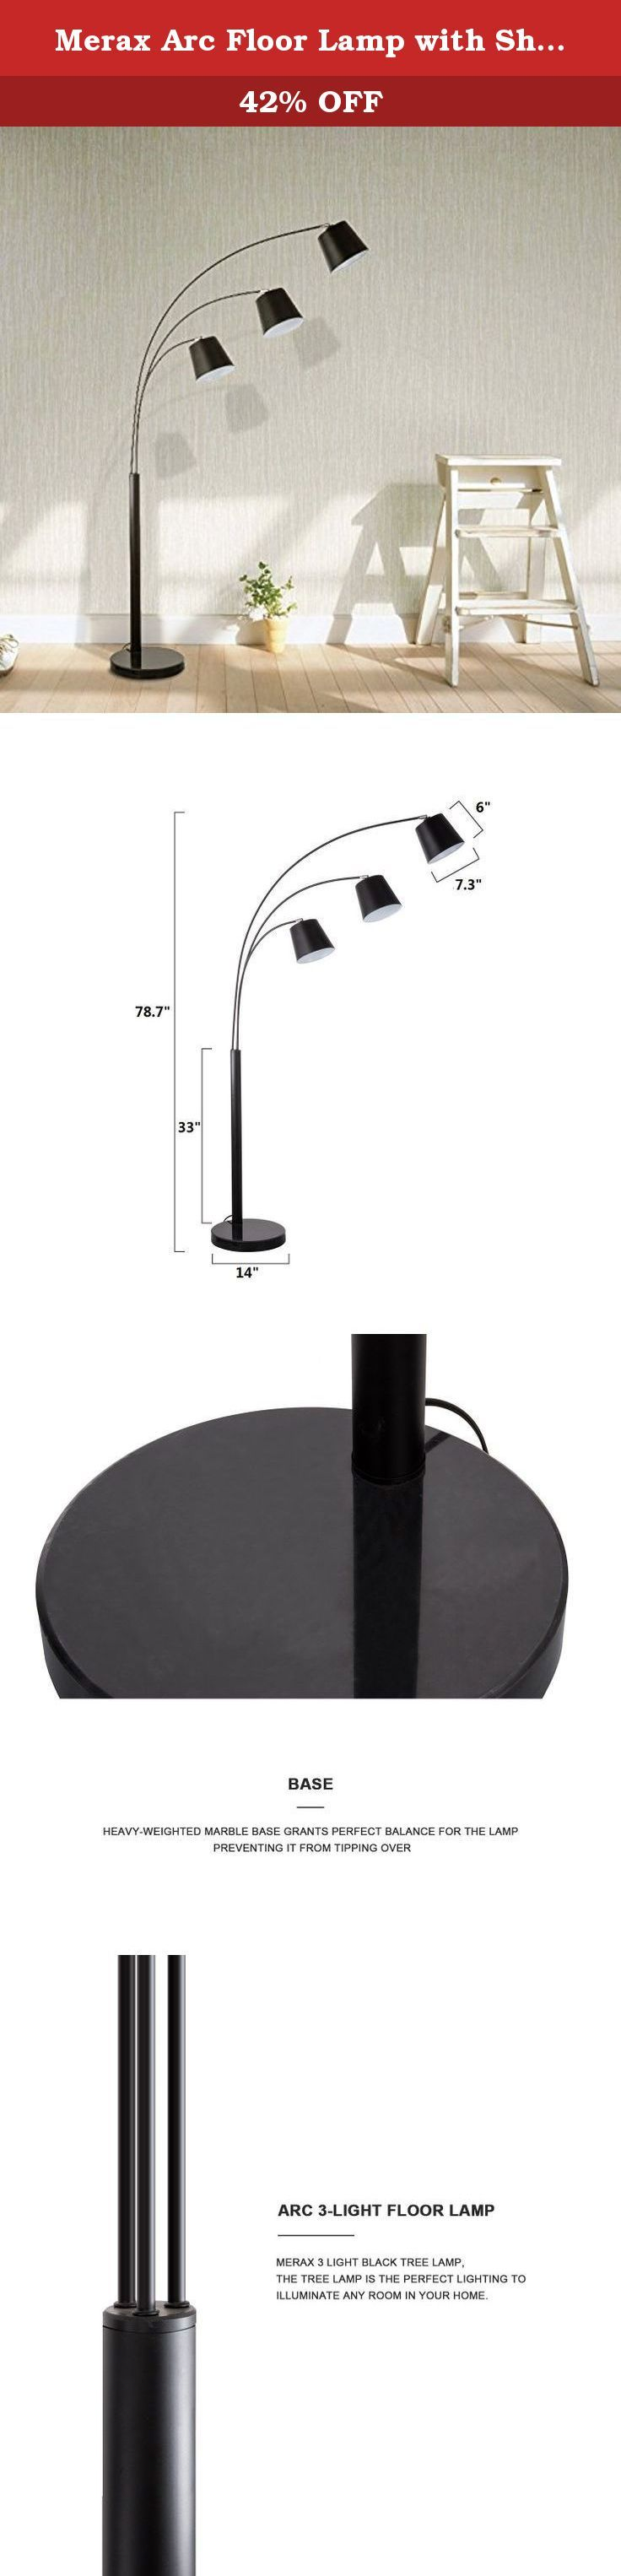 Merax Arc Floor Lamp with Shade and Heavy-duty Base Floor Reading Lamp (Floor Lamp). ETL-US certified Upgrade your living room with this simple, sleek modern arched floor lamp. This lamp is perfect addition to any home or office. Brighten up a dull corner or create an entirely new contemporary feel in your favorite living space with this exceptional arched brushed steel floor lamp. With an arch so dramatic you will think you are looking at a piece of modern art, this lamp will provide…